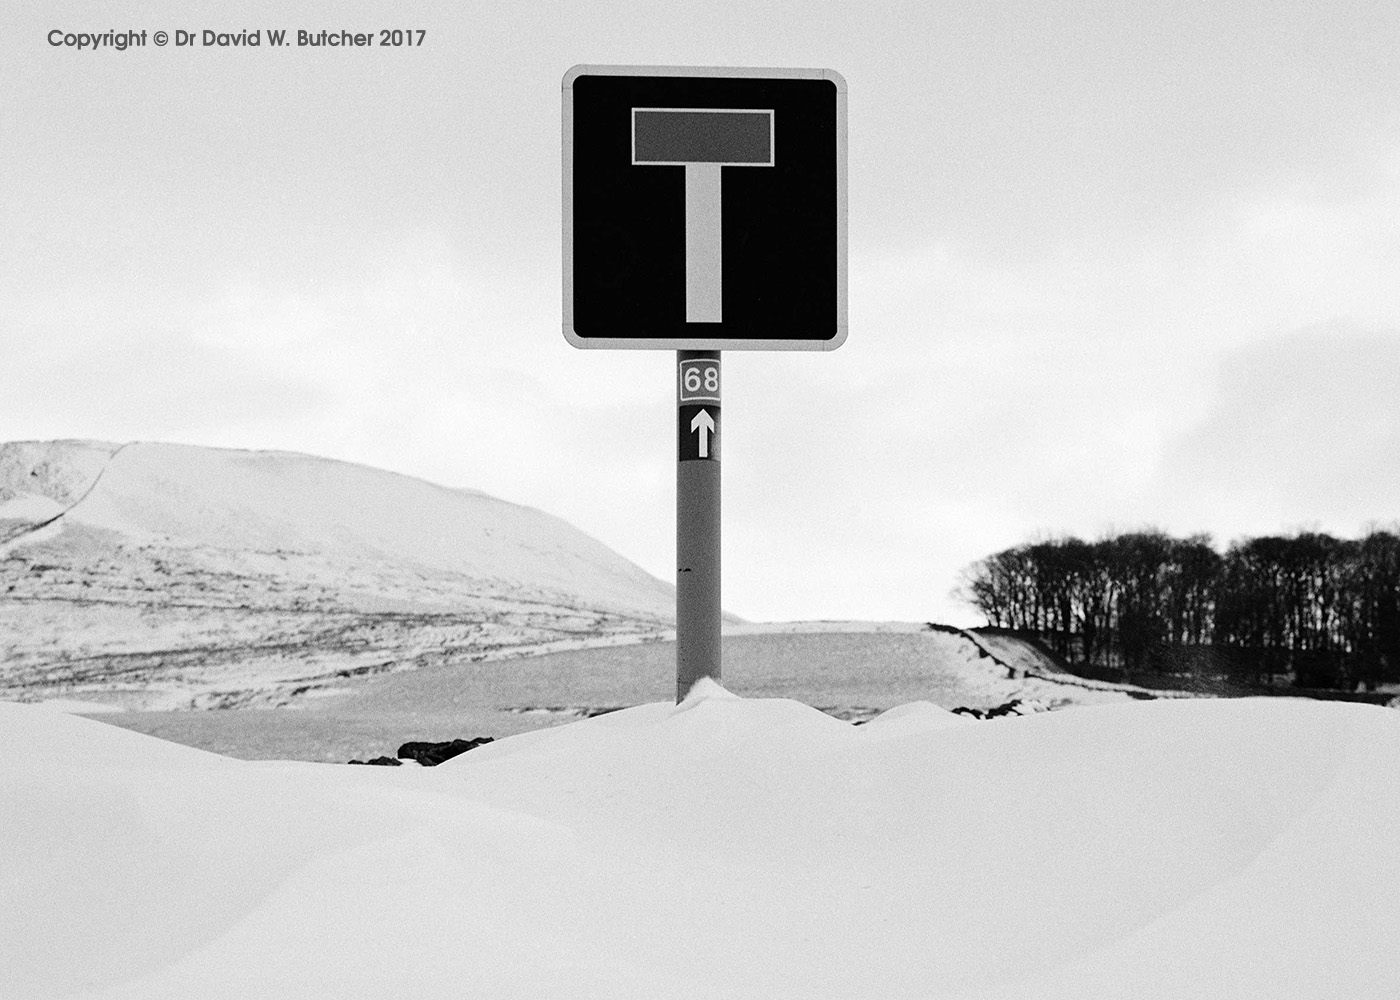 Snow covered road sign near Buxton, Peak District